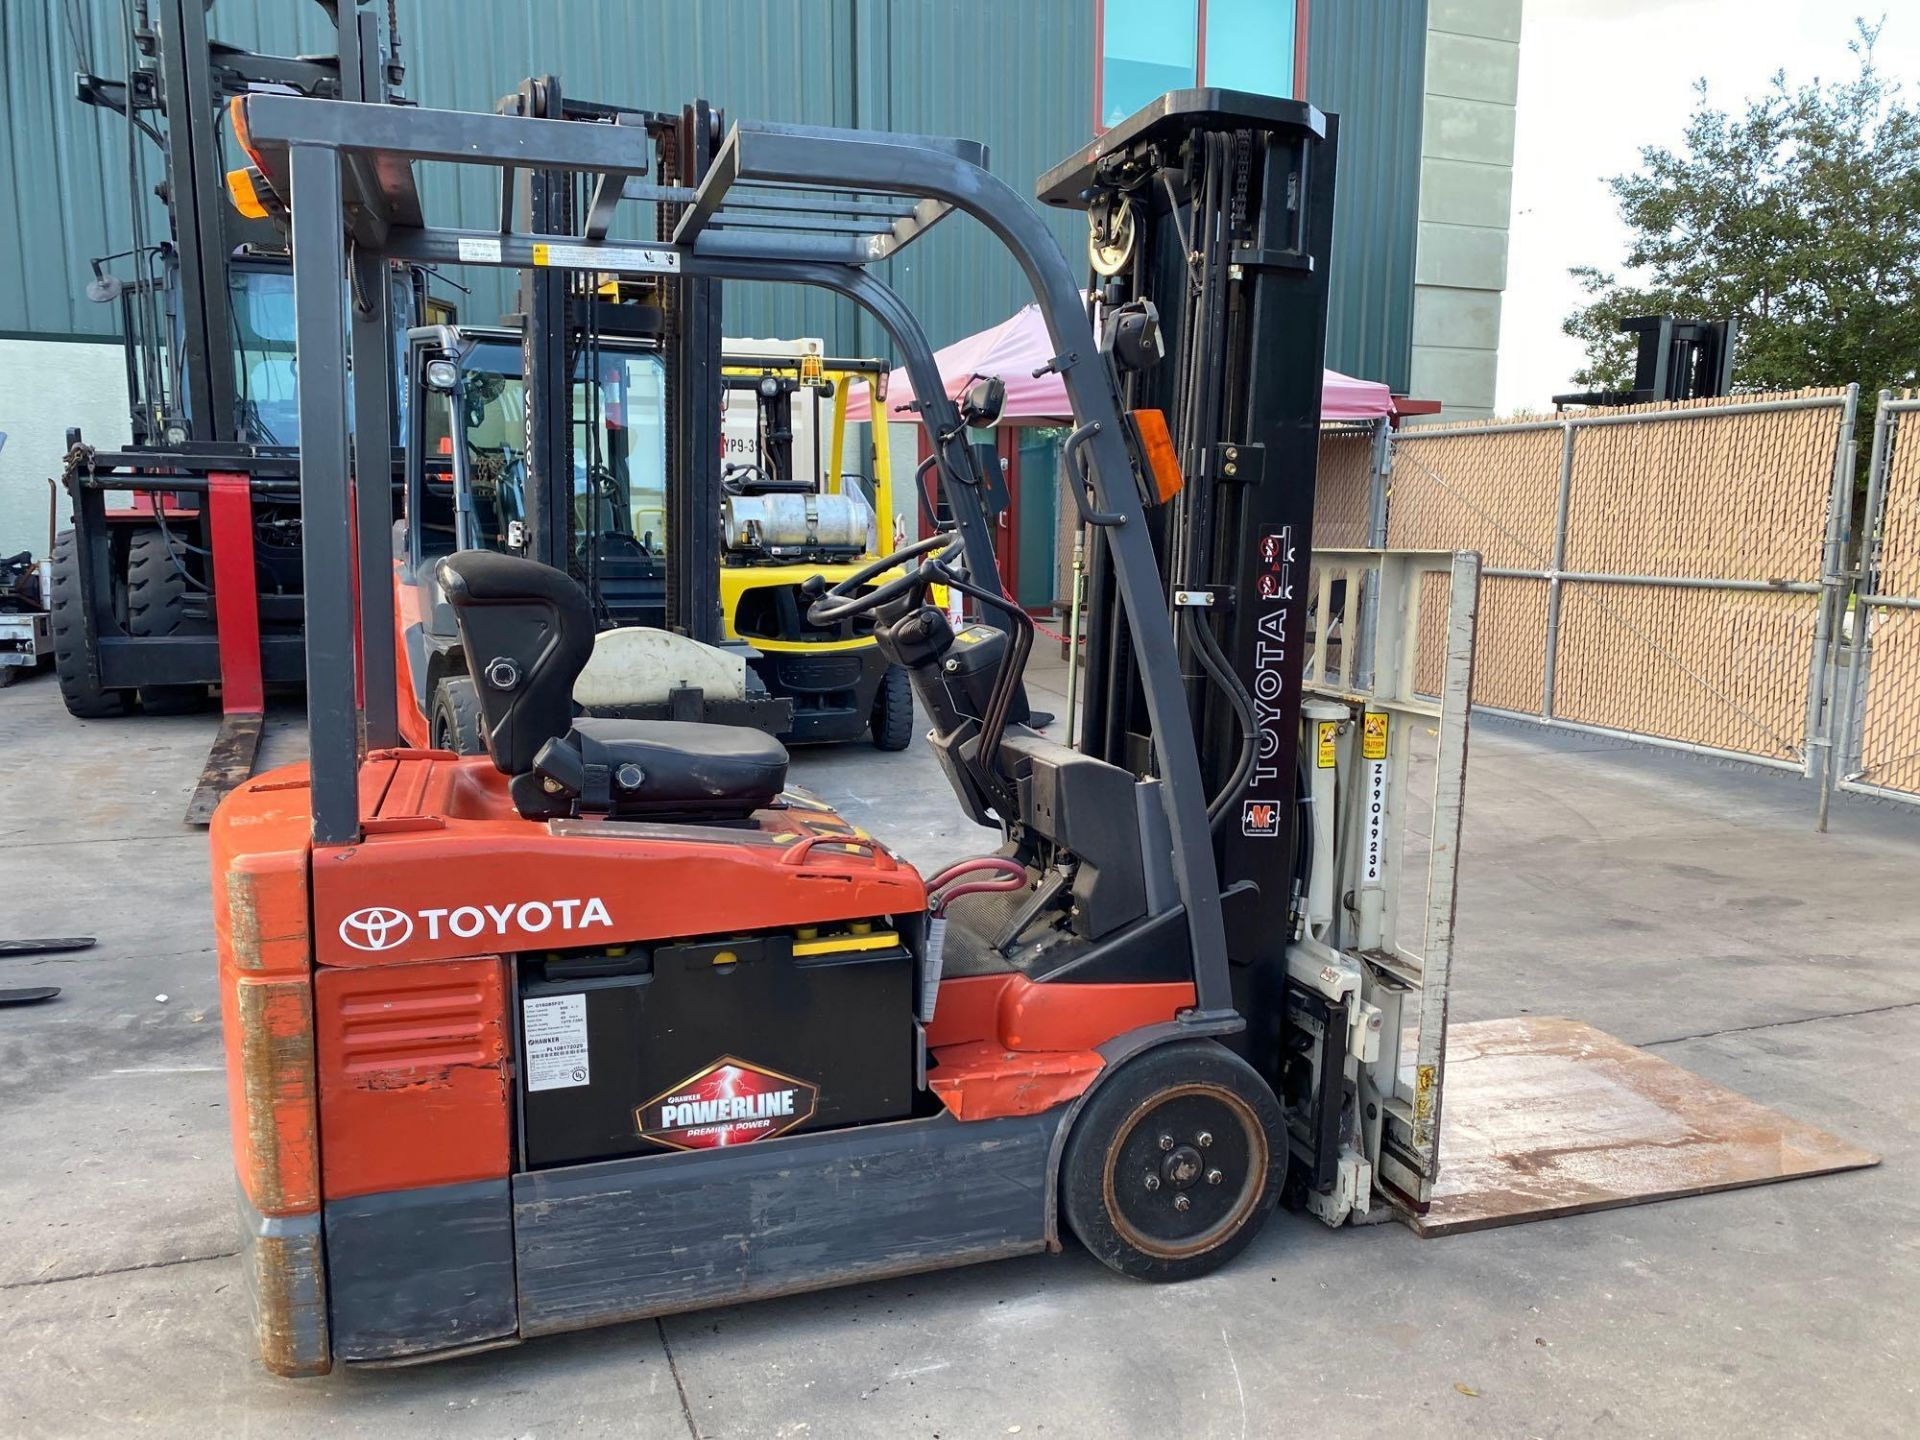 TOYOTA ELECTRIC FORKLIFT MODEL 7FBEU20, 4,000 LB CAPACITY, CASCADE PUSH/PULL ATTACHMENT, TILT, SIDE - Image 12 of 24